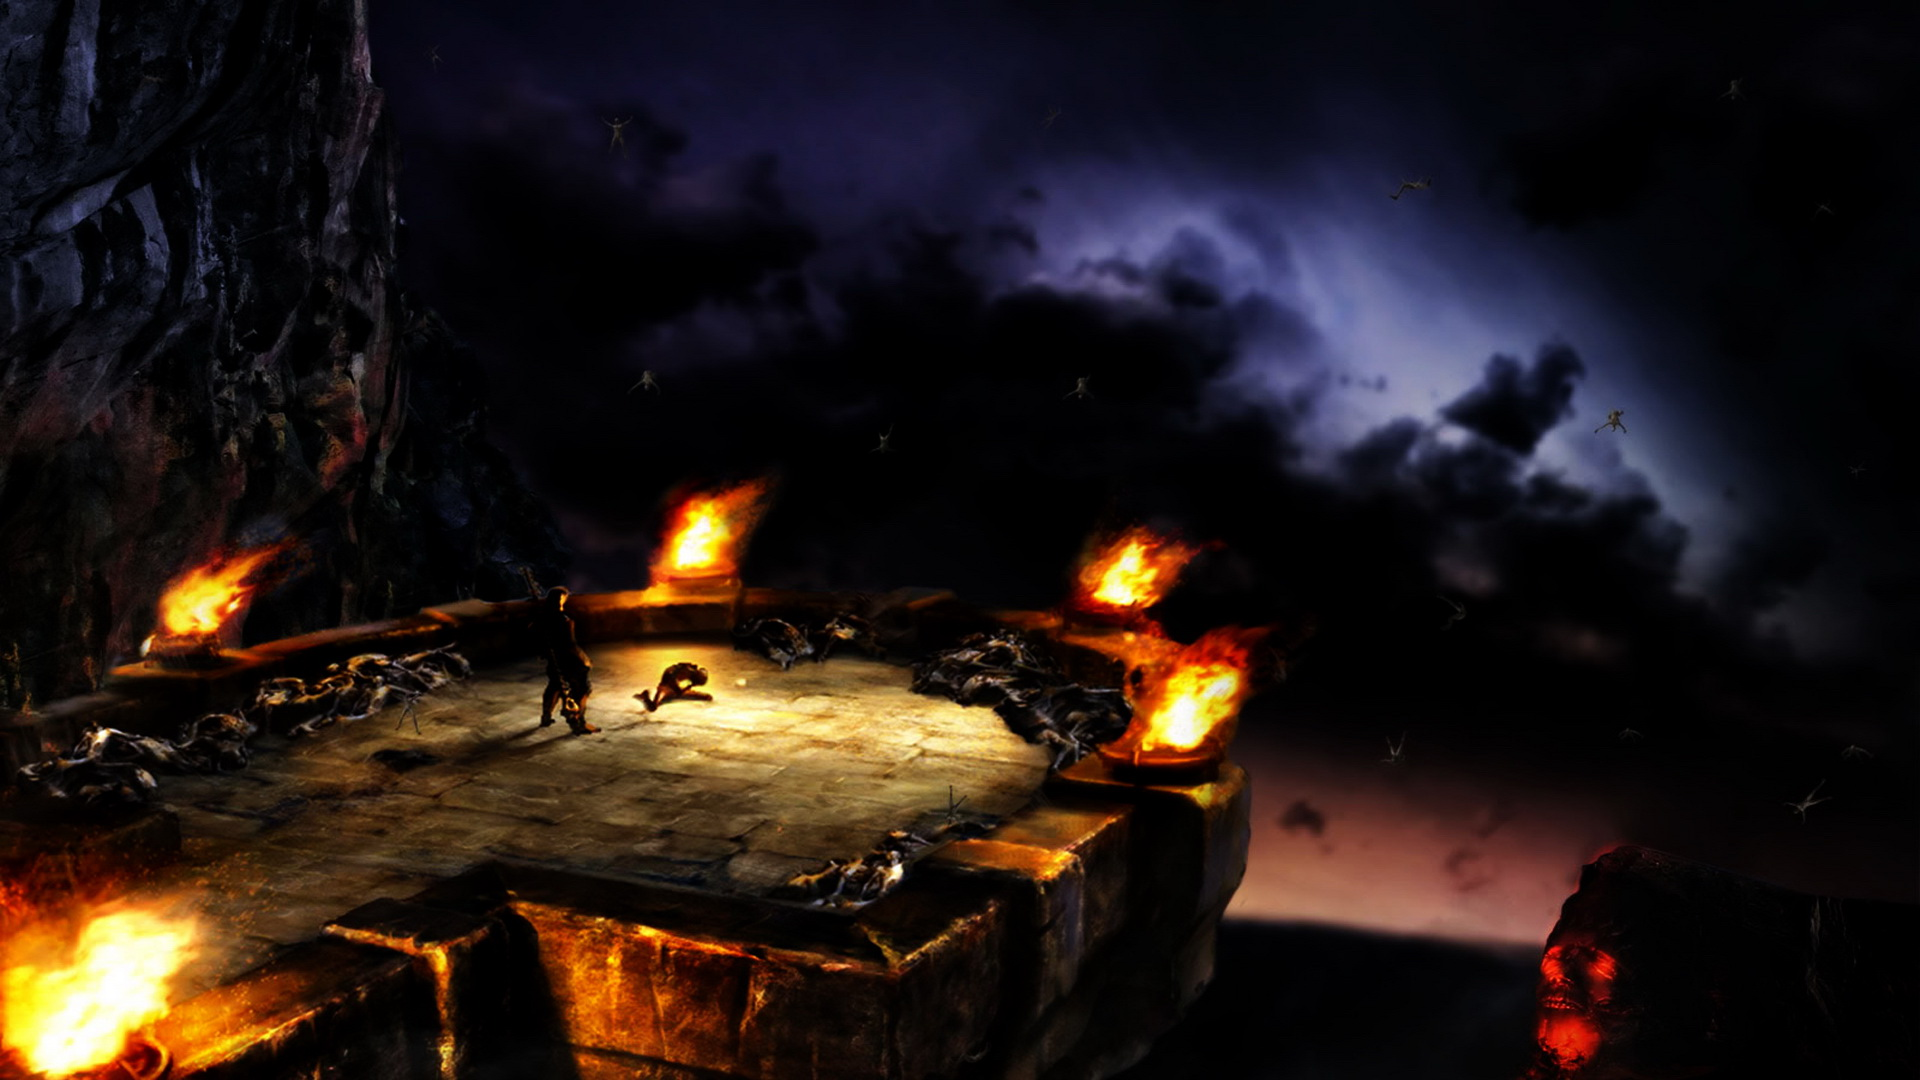 HD Wallpapers Playstation 3 Wallpapers Video Games dantes inferno 1920x1080